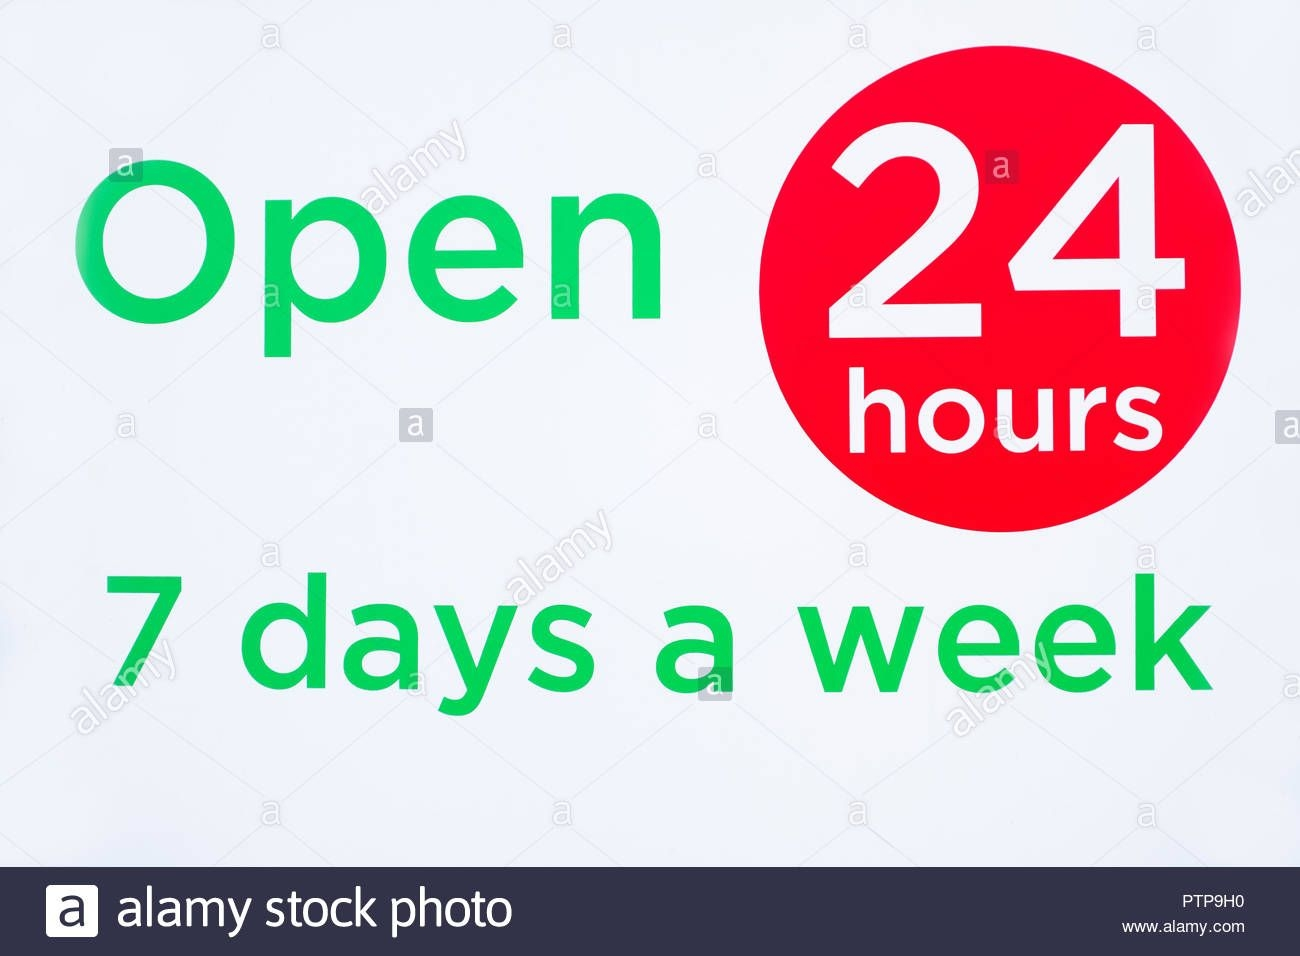 Open 24 Hours 7 Days A Week Round Circle Sign Red And Green